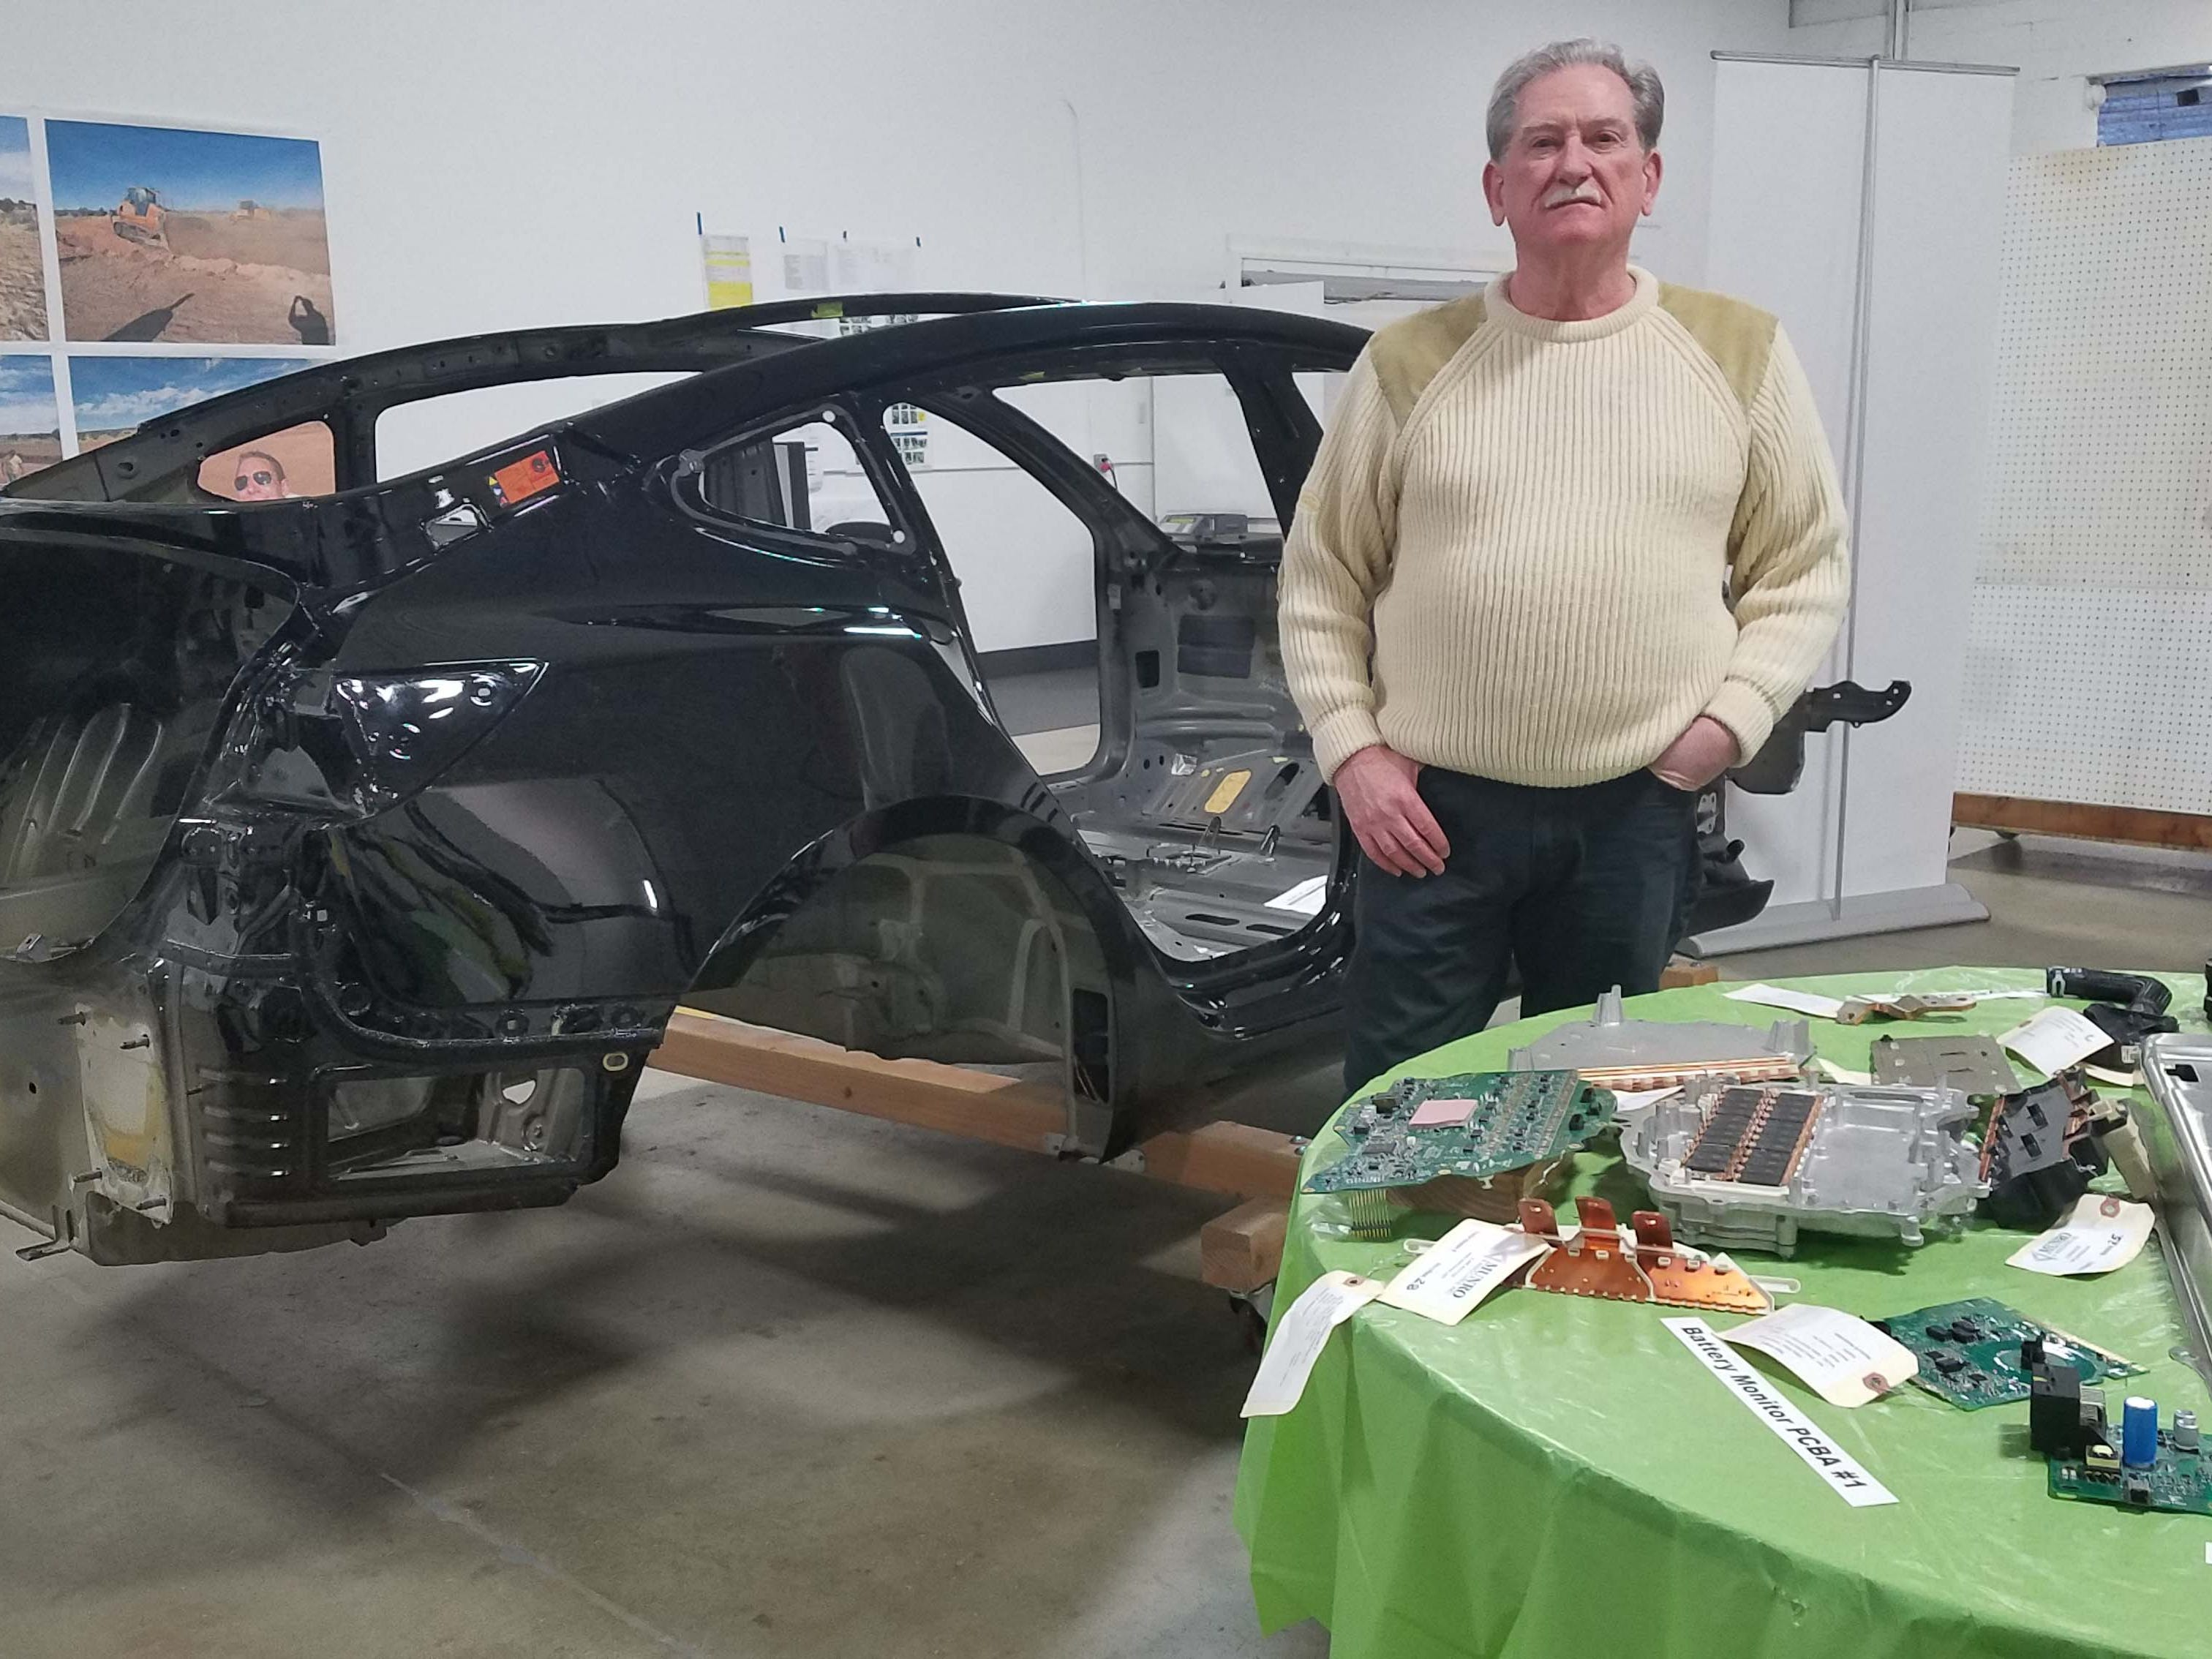 In early 2018, Sandy Munro and his colleagues at Munro & Assoc. tore down a Tesla Model 3 over three months and assessed its components and build quality. Results: 1) build quality the worst they have seen, 2) electronics systems tops in class. Manufacturers like Toyota have since bought his report.